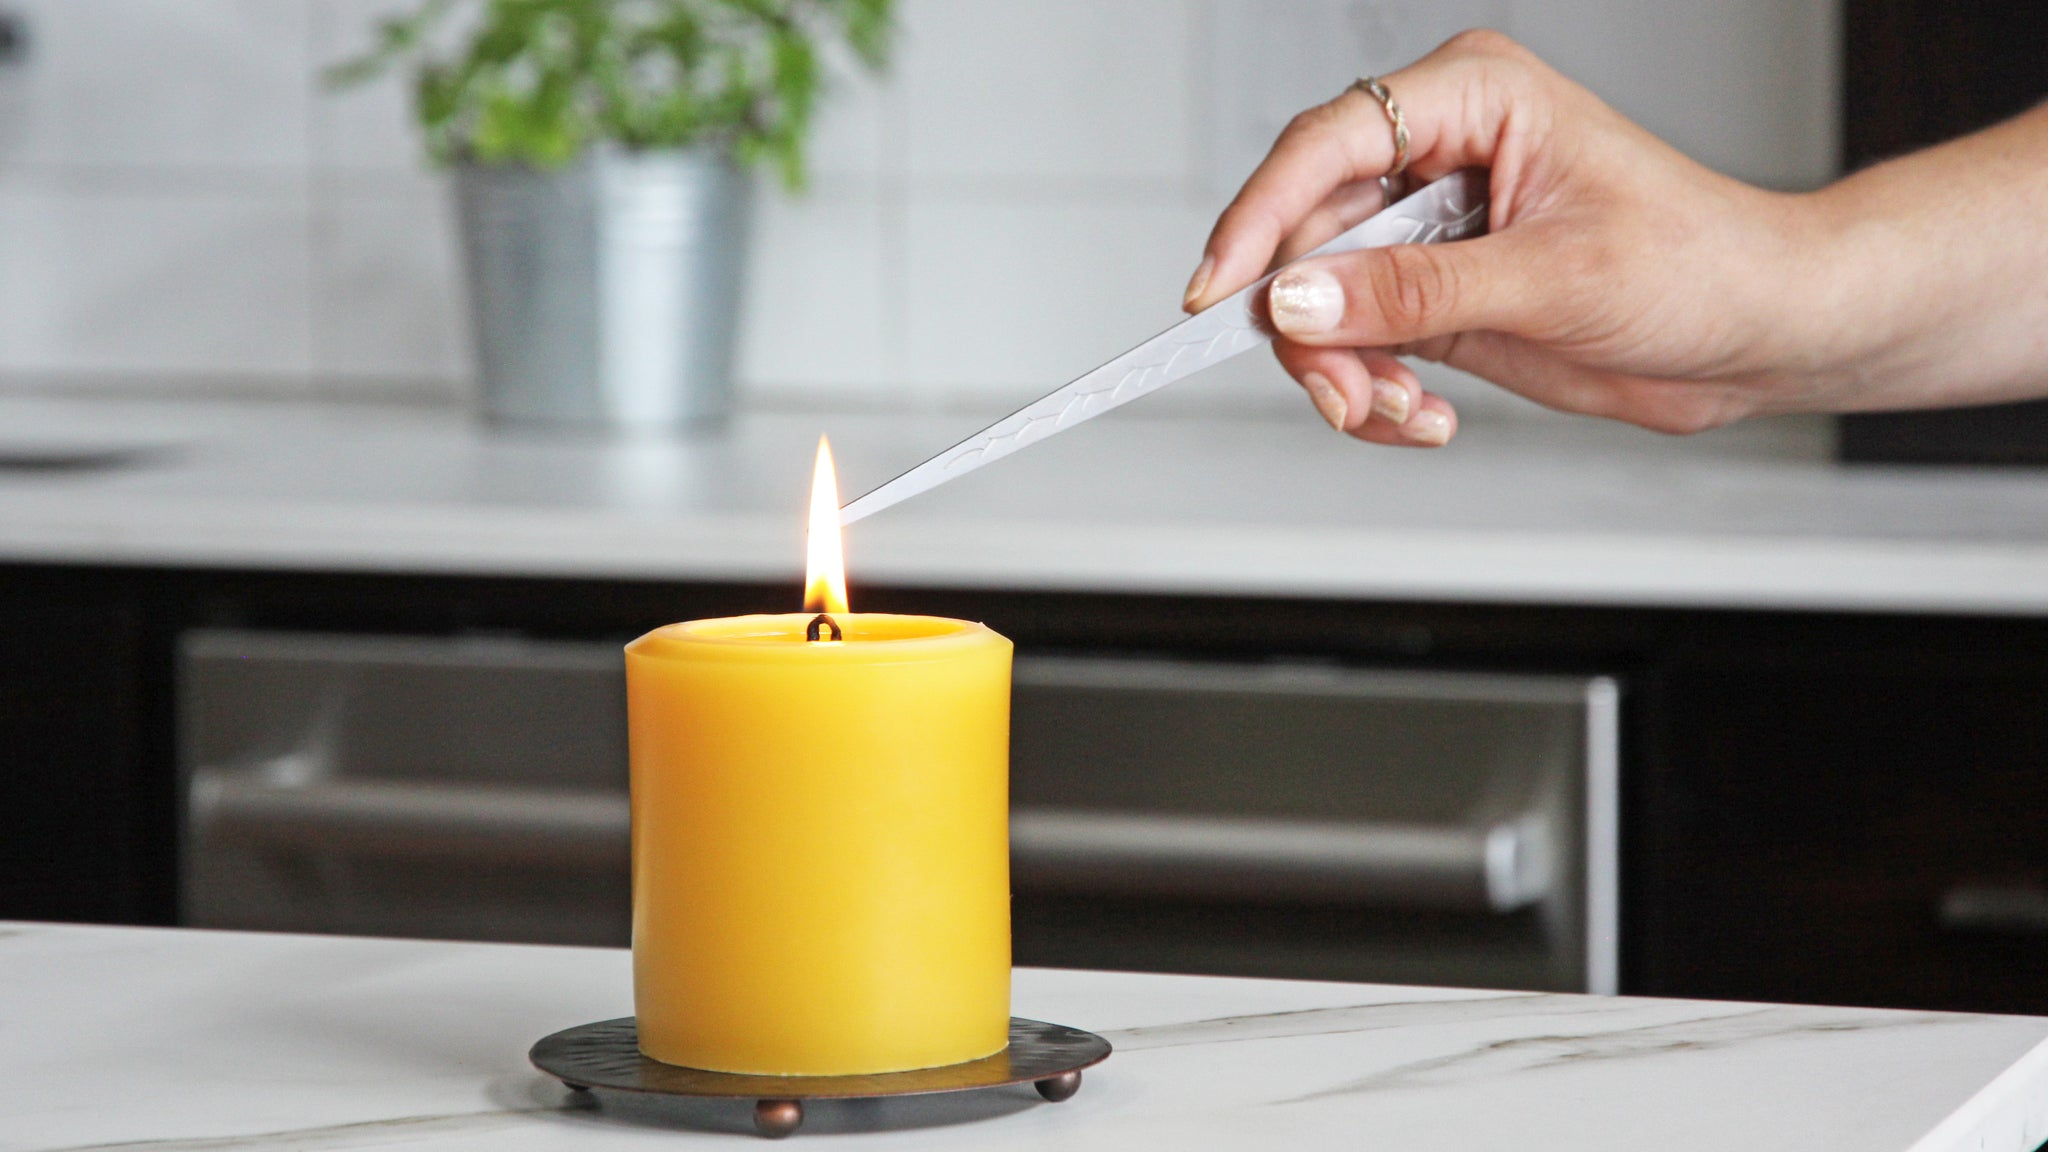 General Candle Care